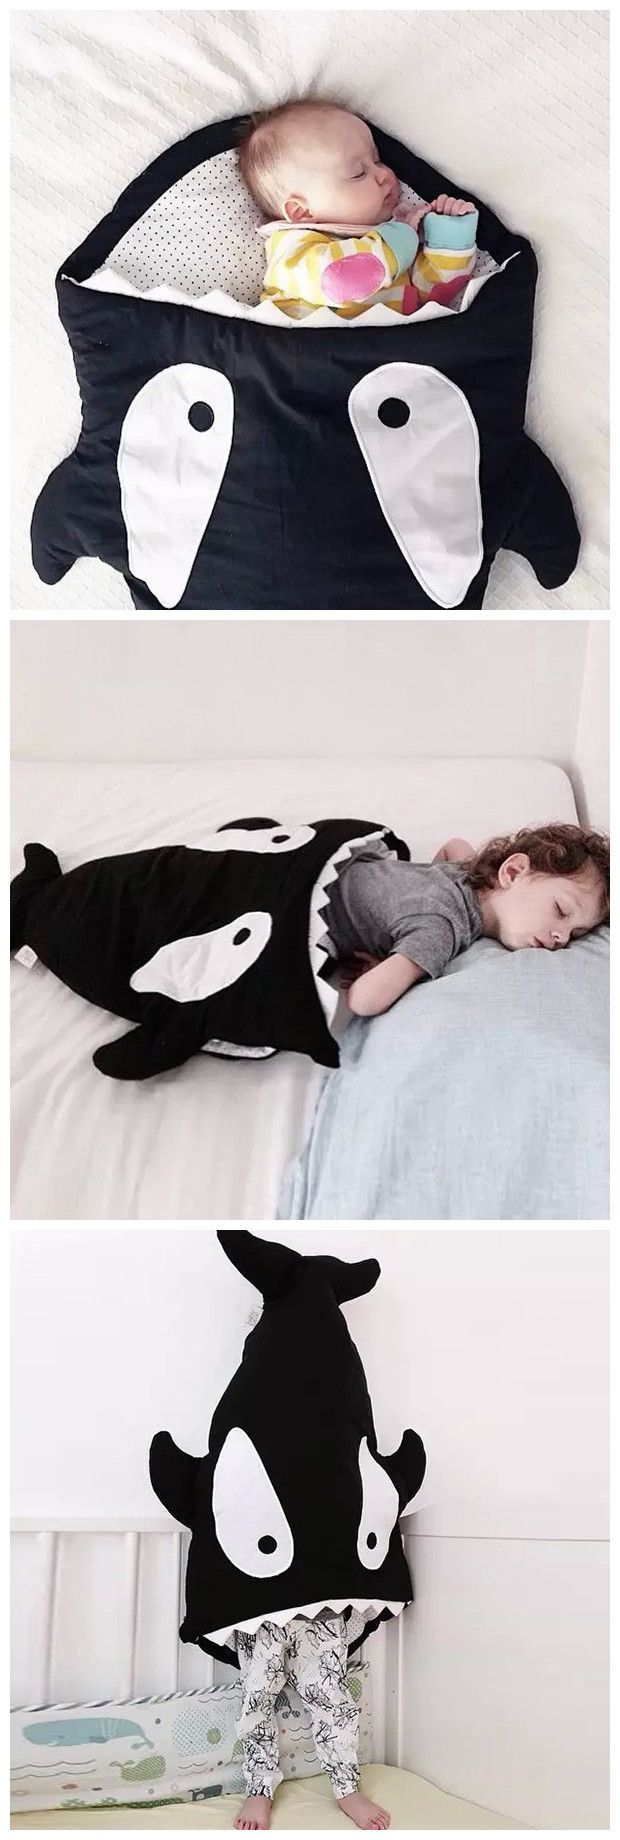 Cute Thick Shark Blanket By Blankie Tails For YOUR DEAR BABY   Sounds Like  A Sewing Project To Me